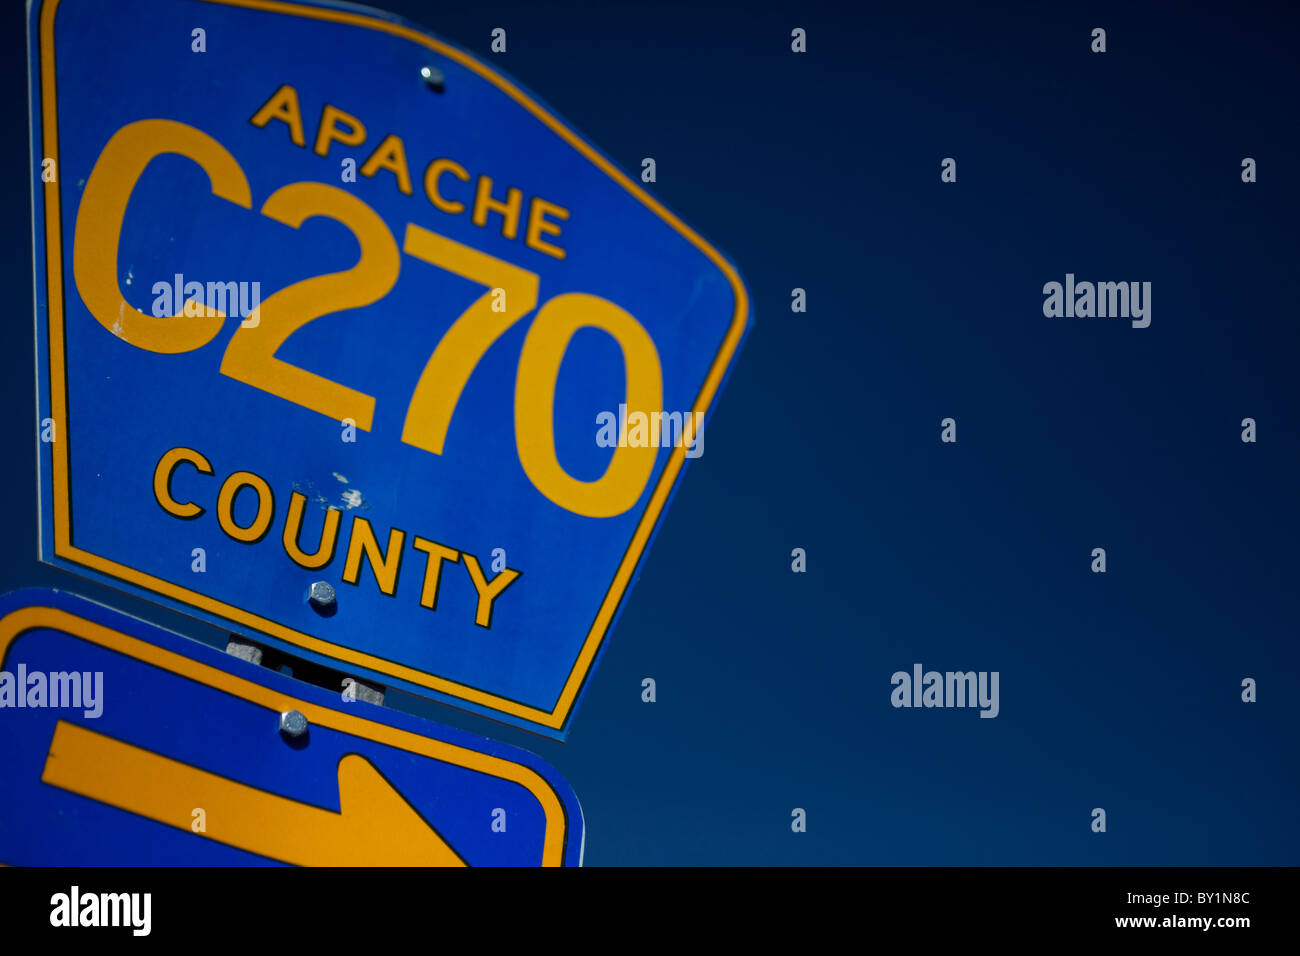 USA, Arizona, Apache Country. A road signpost of a desert road for Apache Country - an mainly arid desert area set - Stock Image